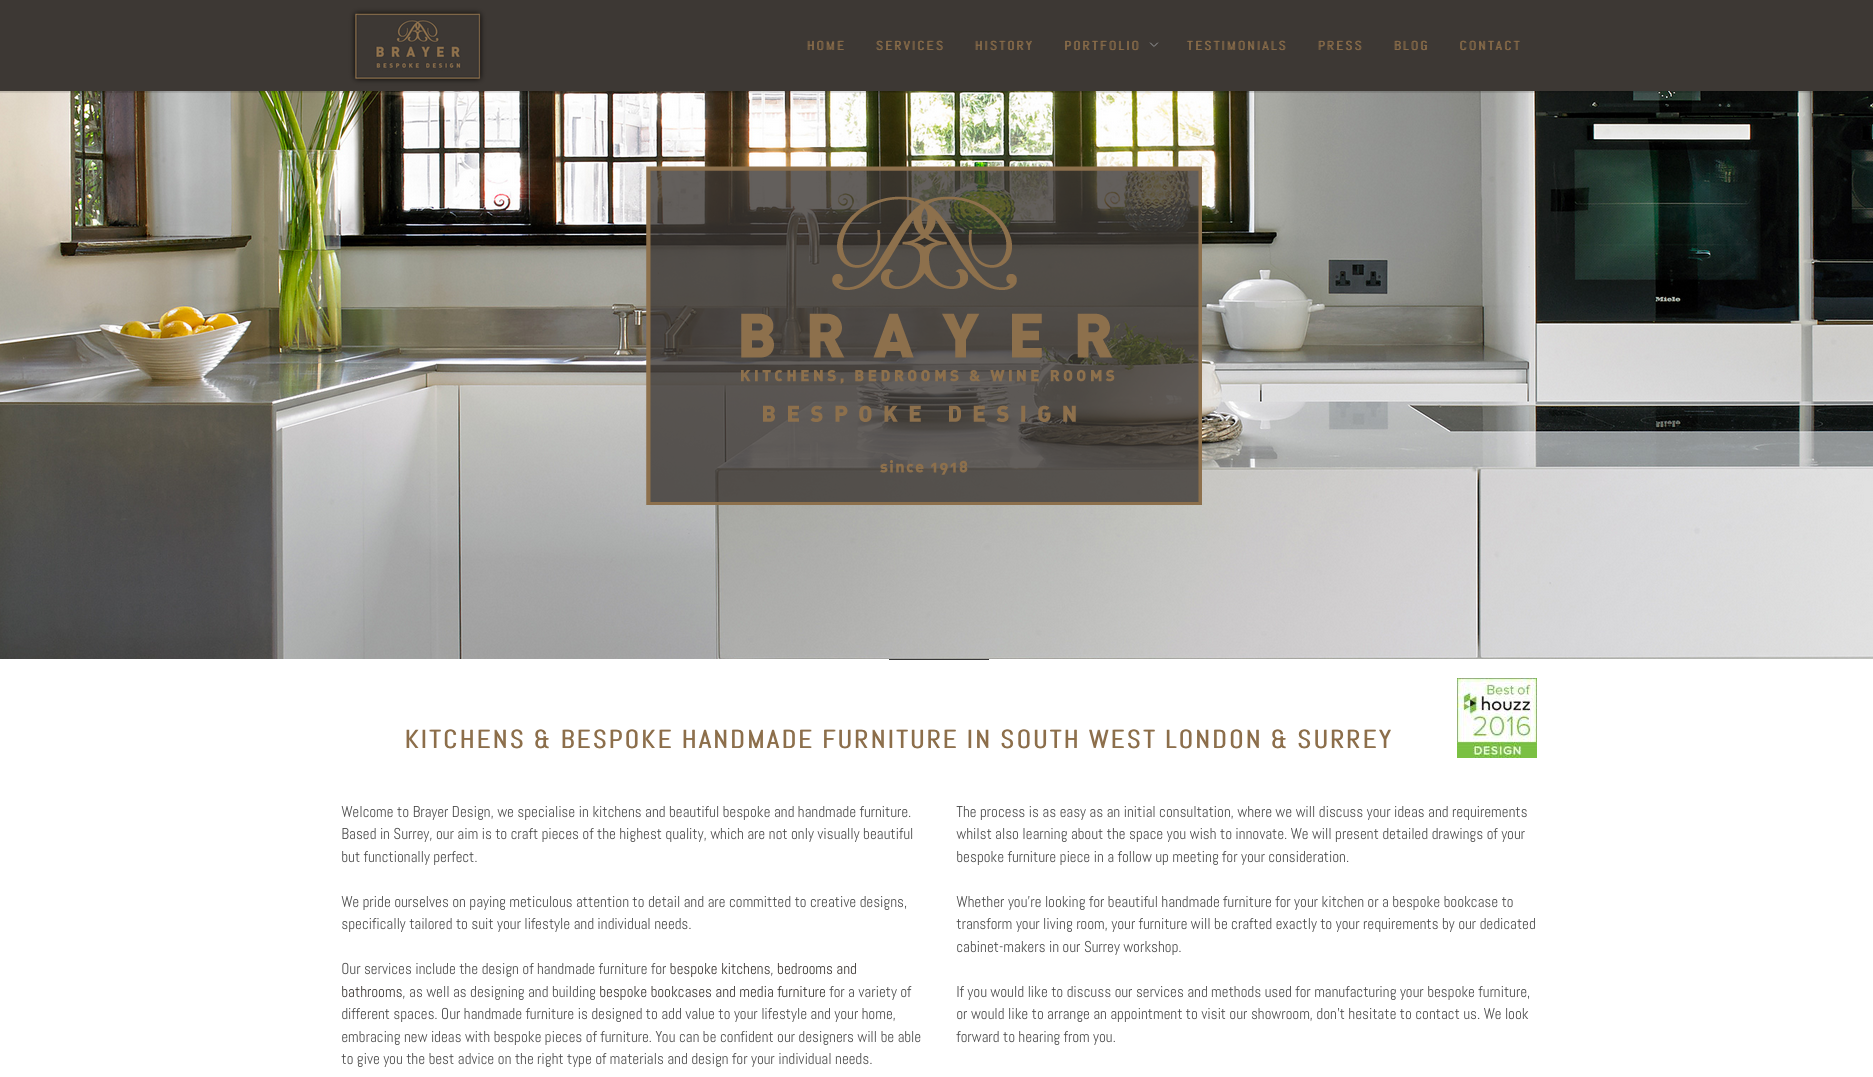 Brayer Website Redesign Homepage Screenshot